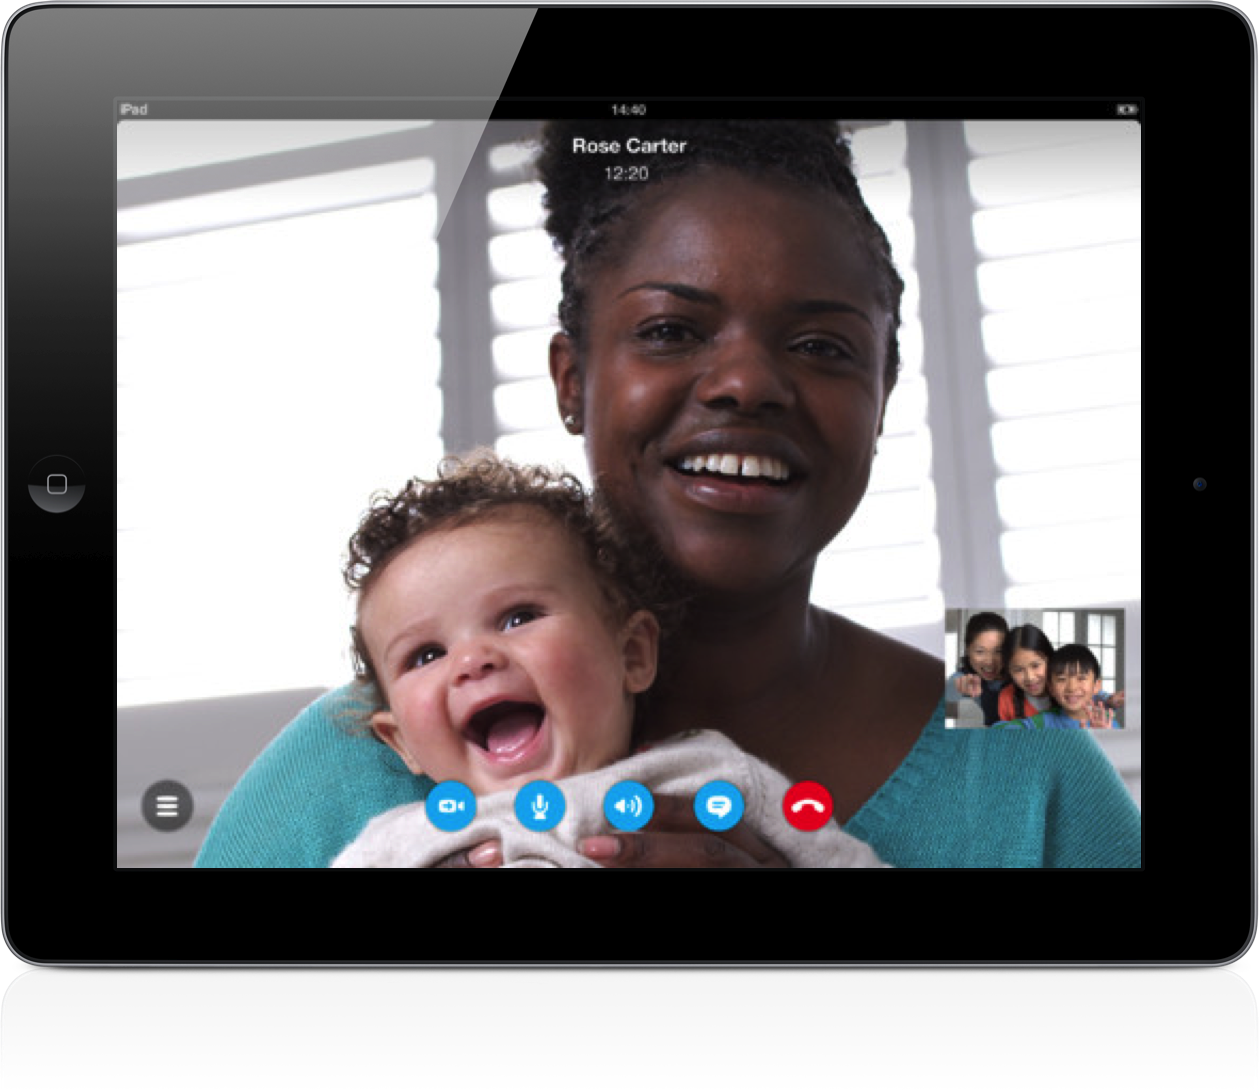 Skype Users Can Now Record And Send Video Clips Worldwide For Free